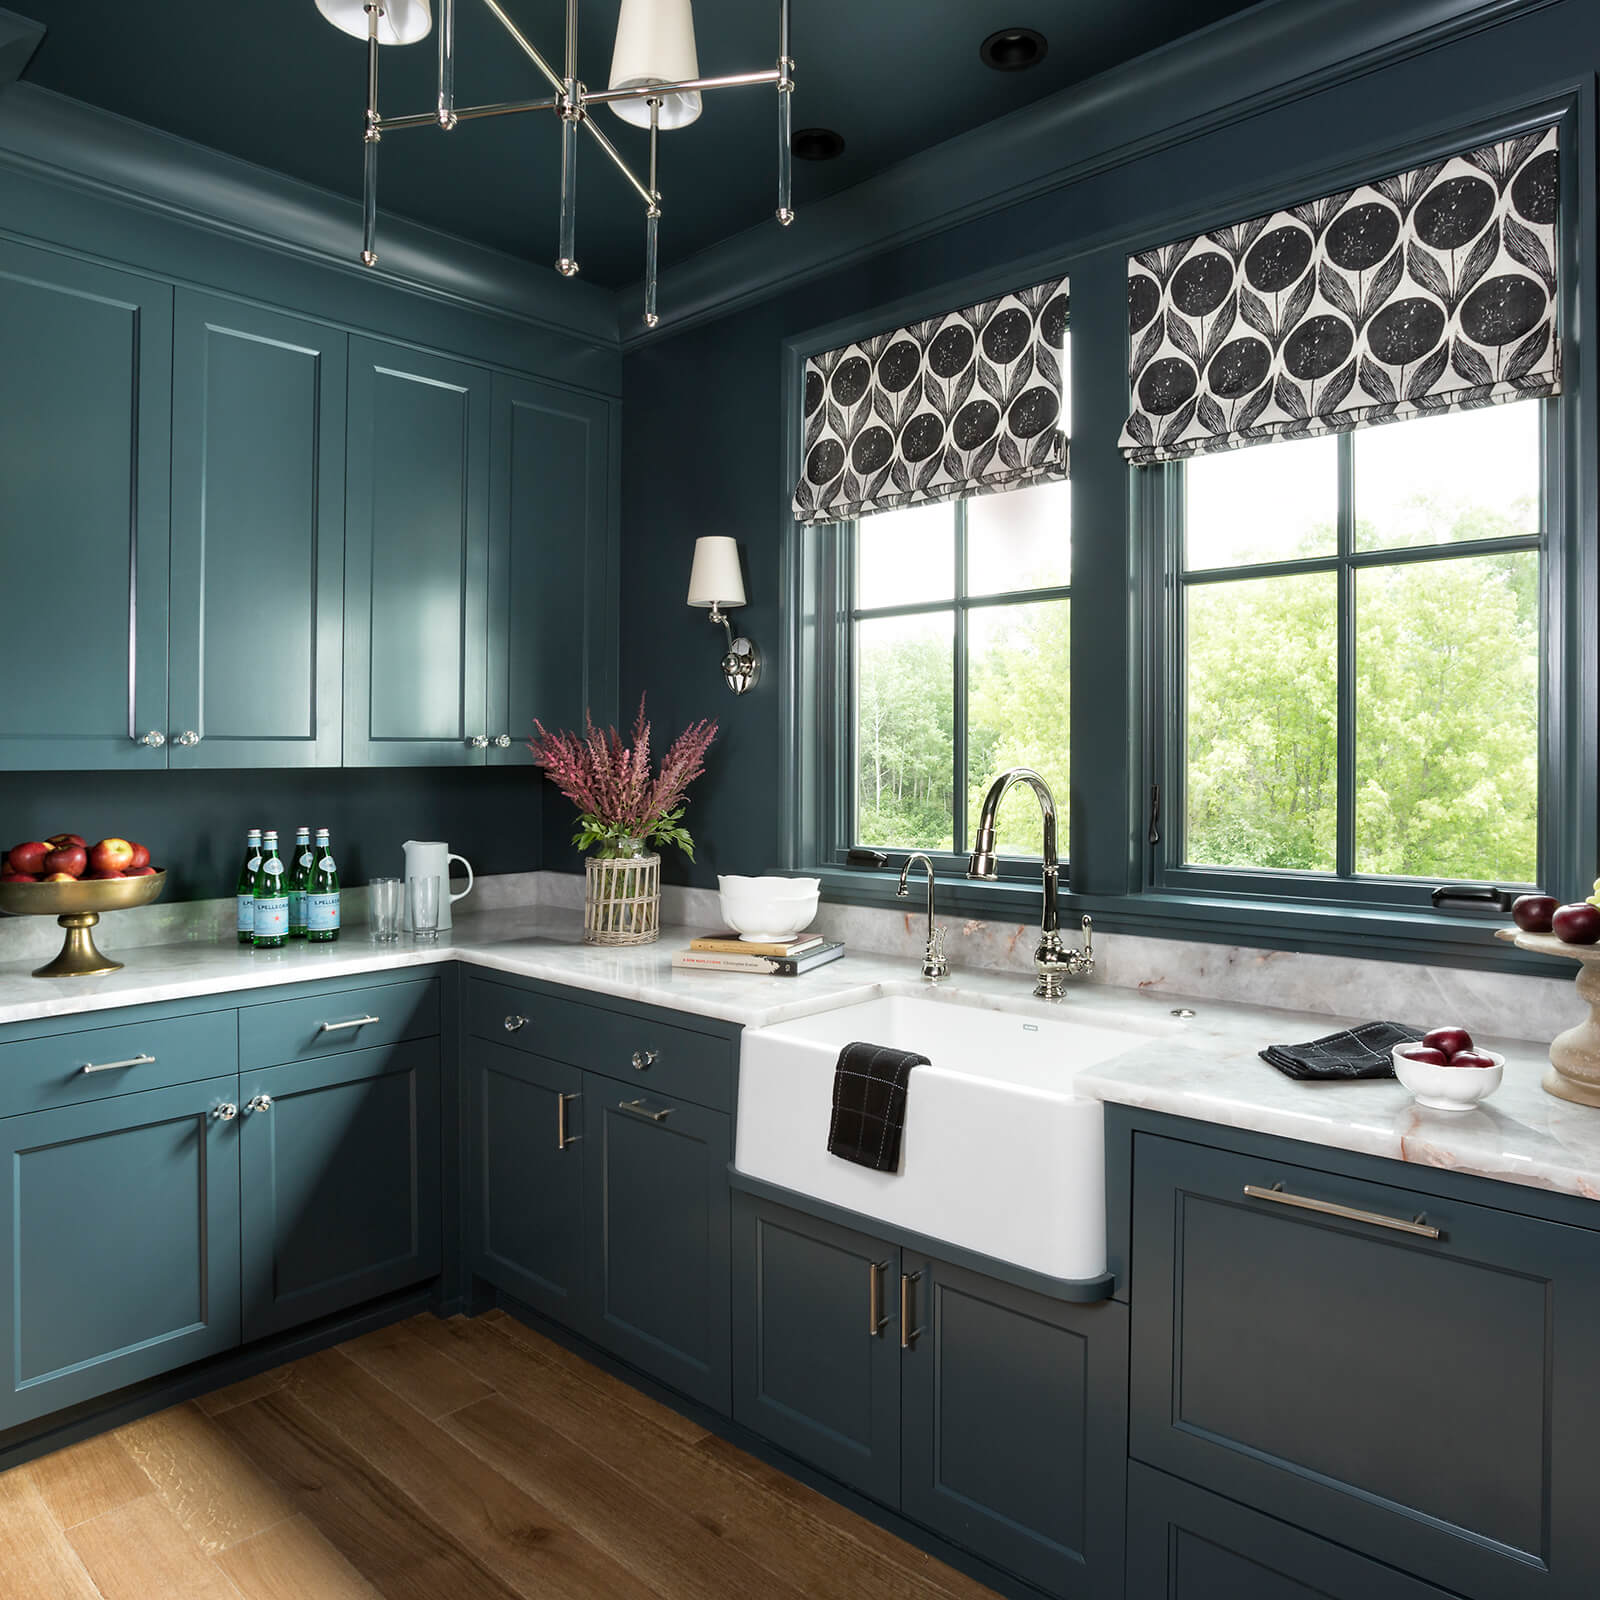 Modern farm style kitchen with Marvin Signature Ultimate Casement Windows